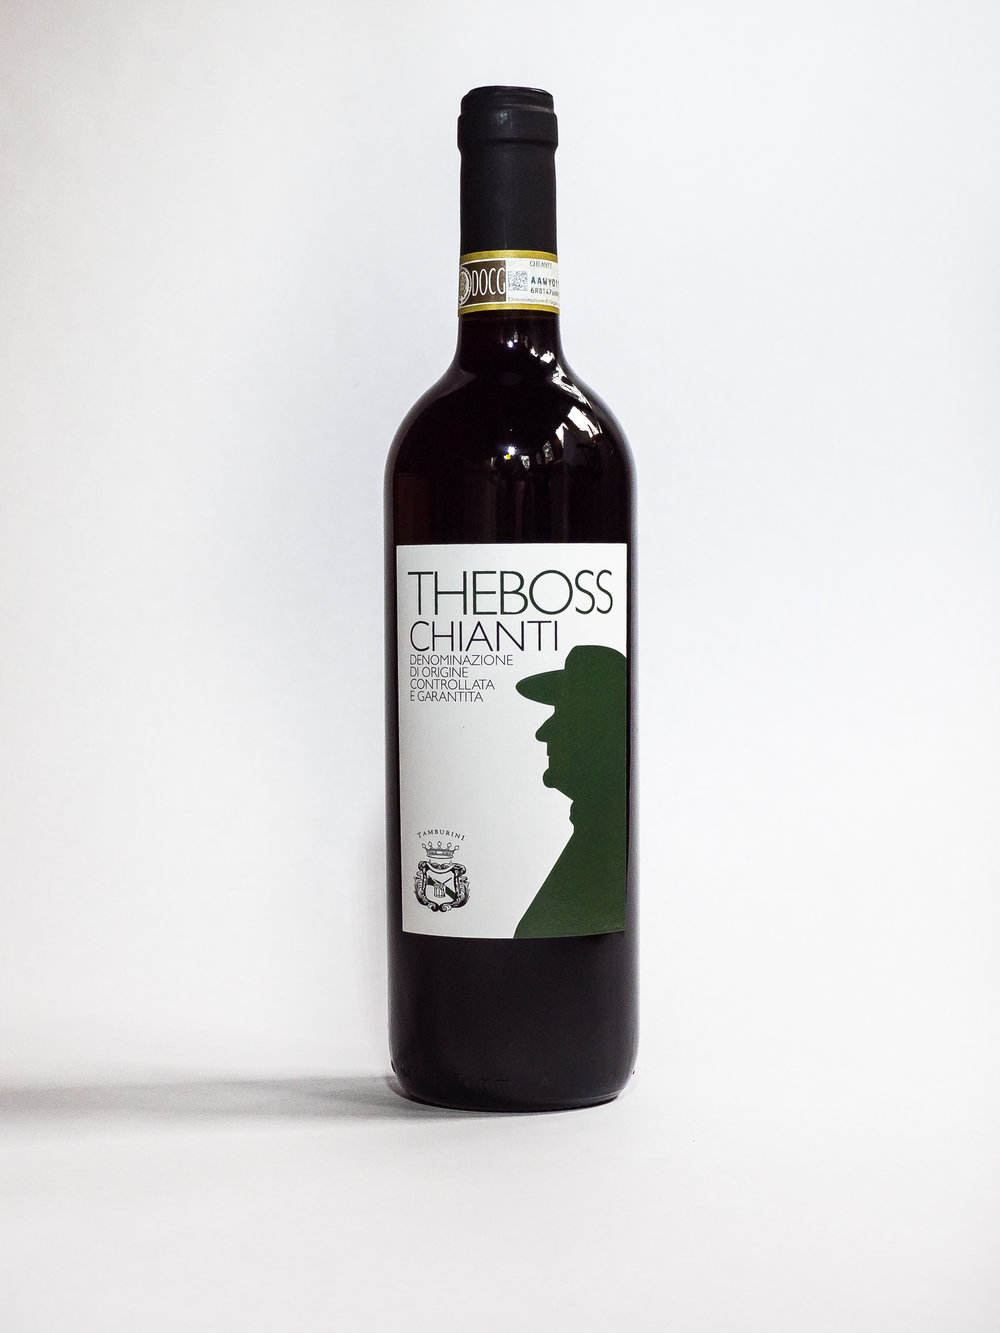 The Boss Chianti 2014    Producer:   Azienda Agricola Tamburini    Region:  Florence  Grapes:  Sangiovese 90%, Canaiolo 10%  Characteristics:  Mauro presents a ruby red color, clear and brilliant. Fruity and floral, the nose opens with an intense sequence of pomegranate, raspberry, cherry and violets. Fresh, with aromatic hints of eucalyptus and spicy nuances of nutmeg. Warm on the palate, a generous tannin texture typical of Sangiovese.